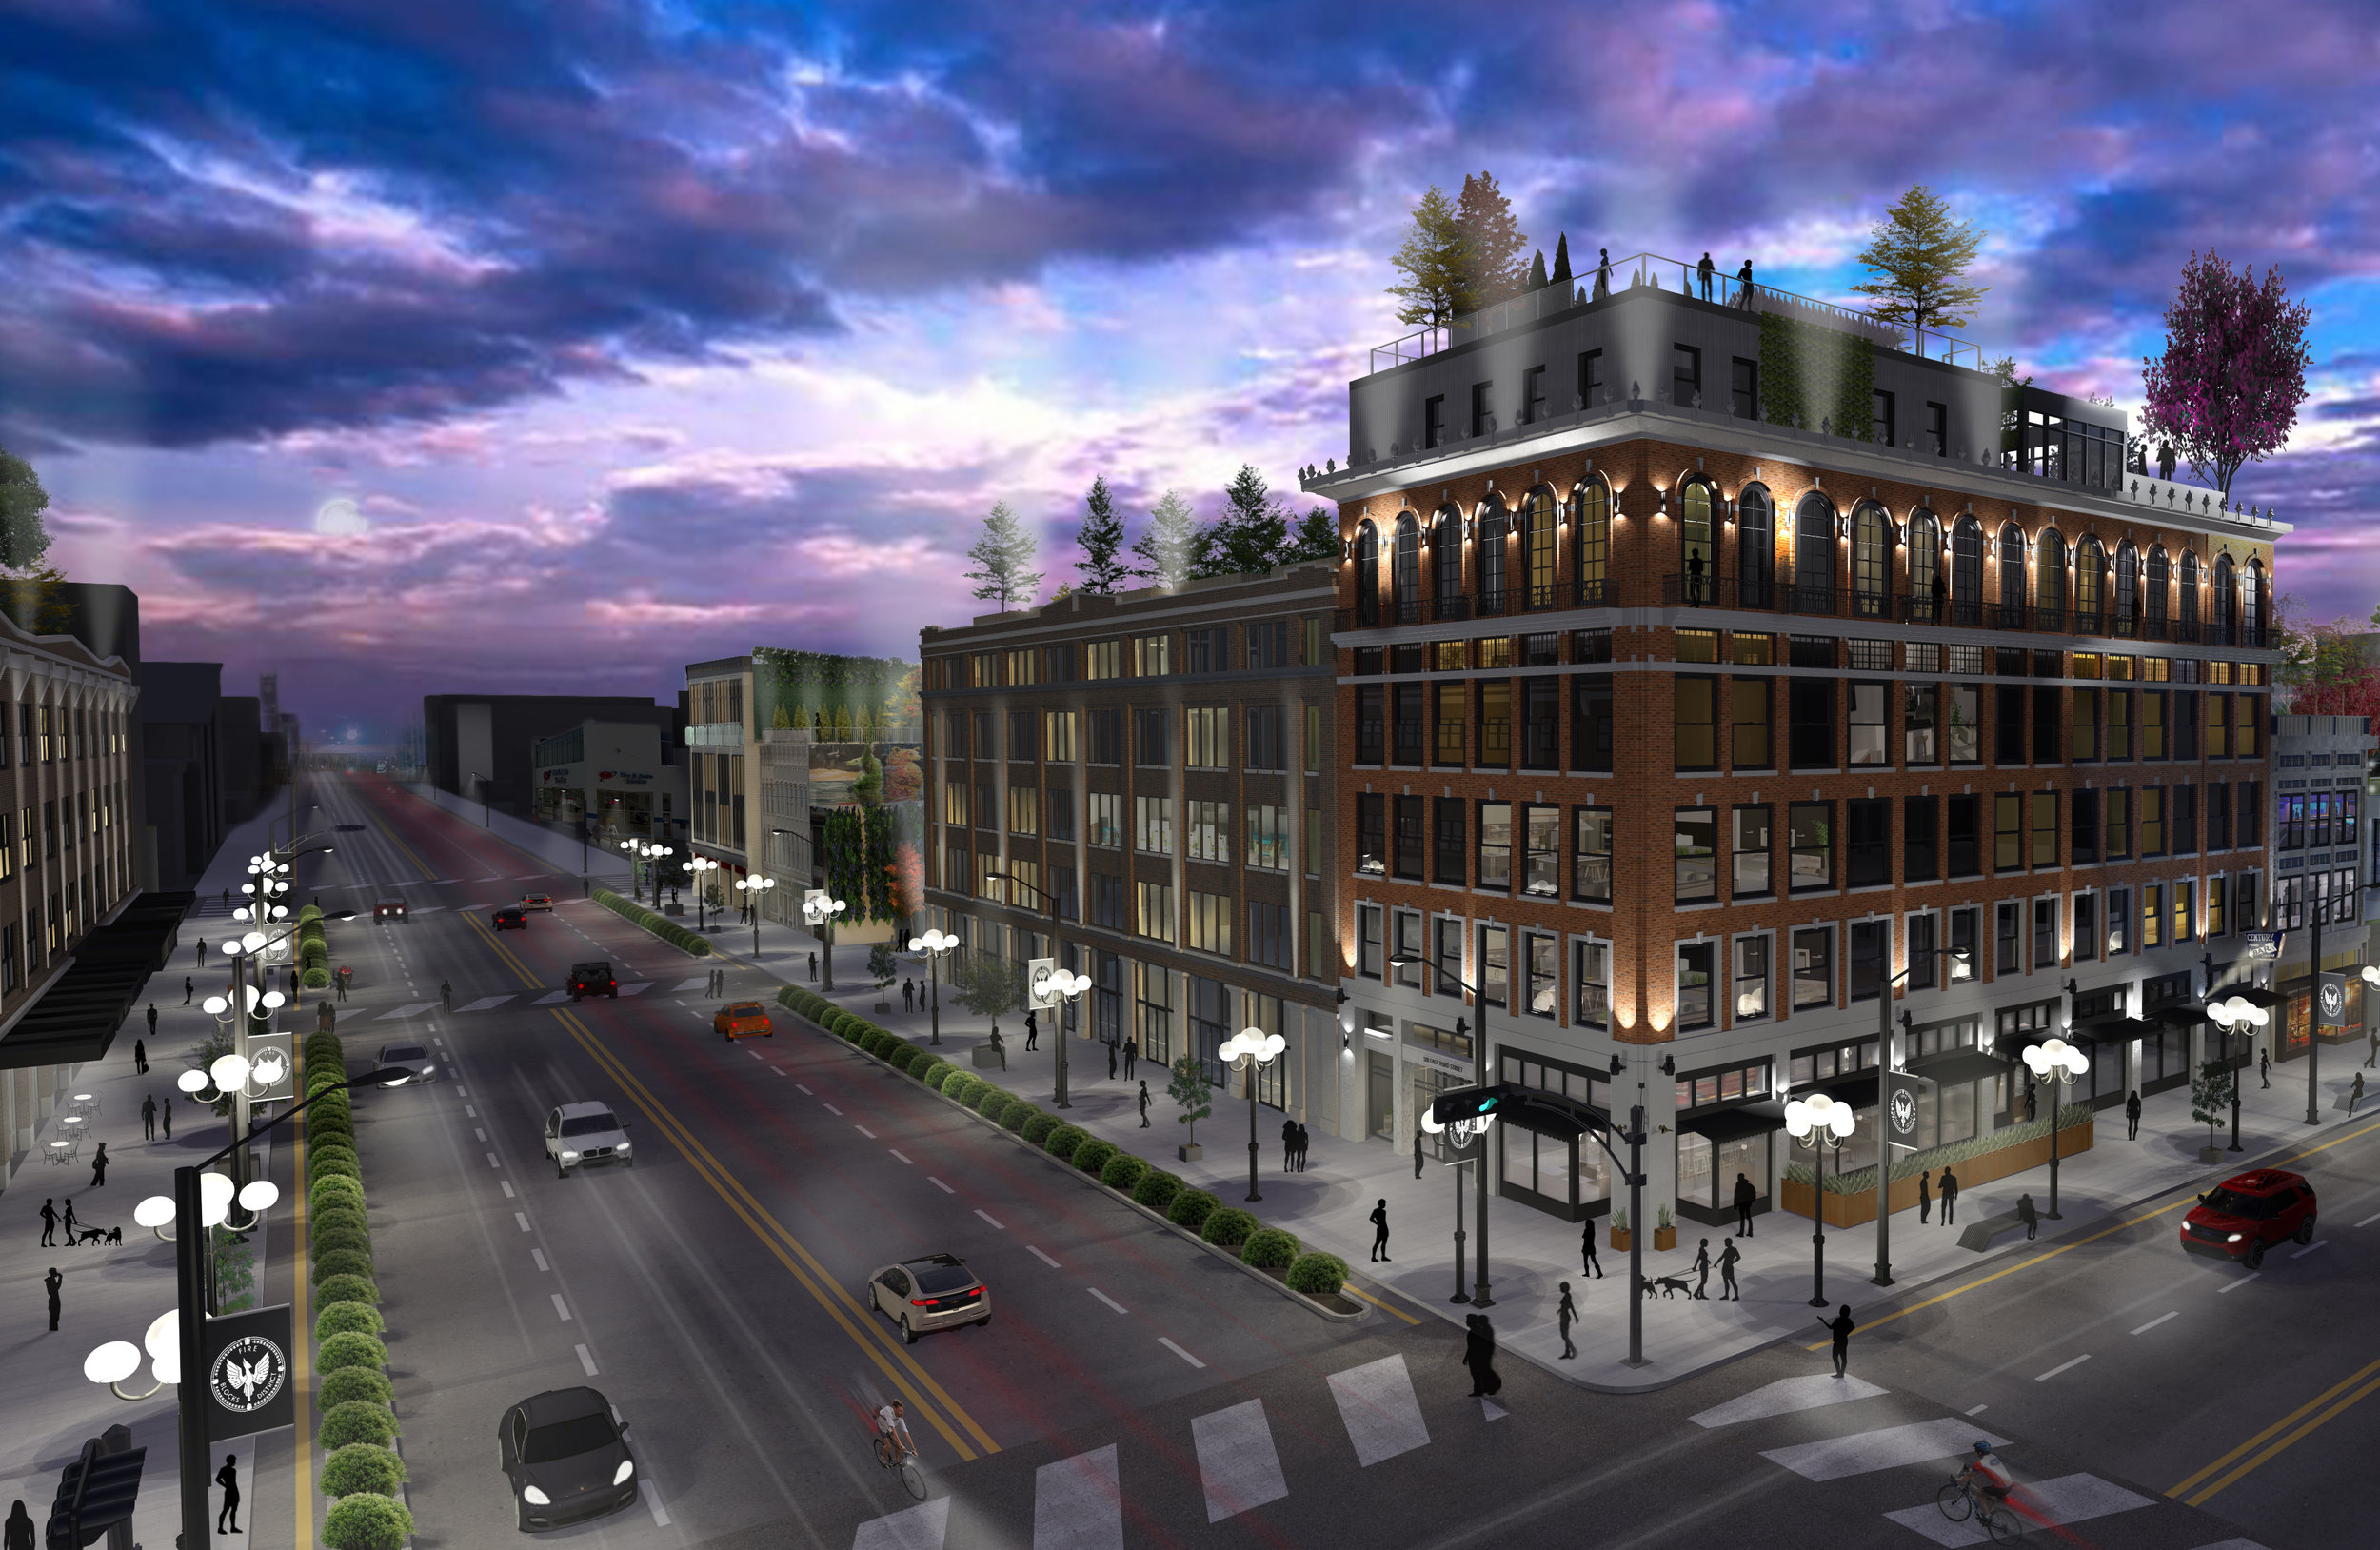 A nearly $80 million plan will redevelop 400,000 square feet across two city blocks into… more